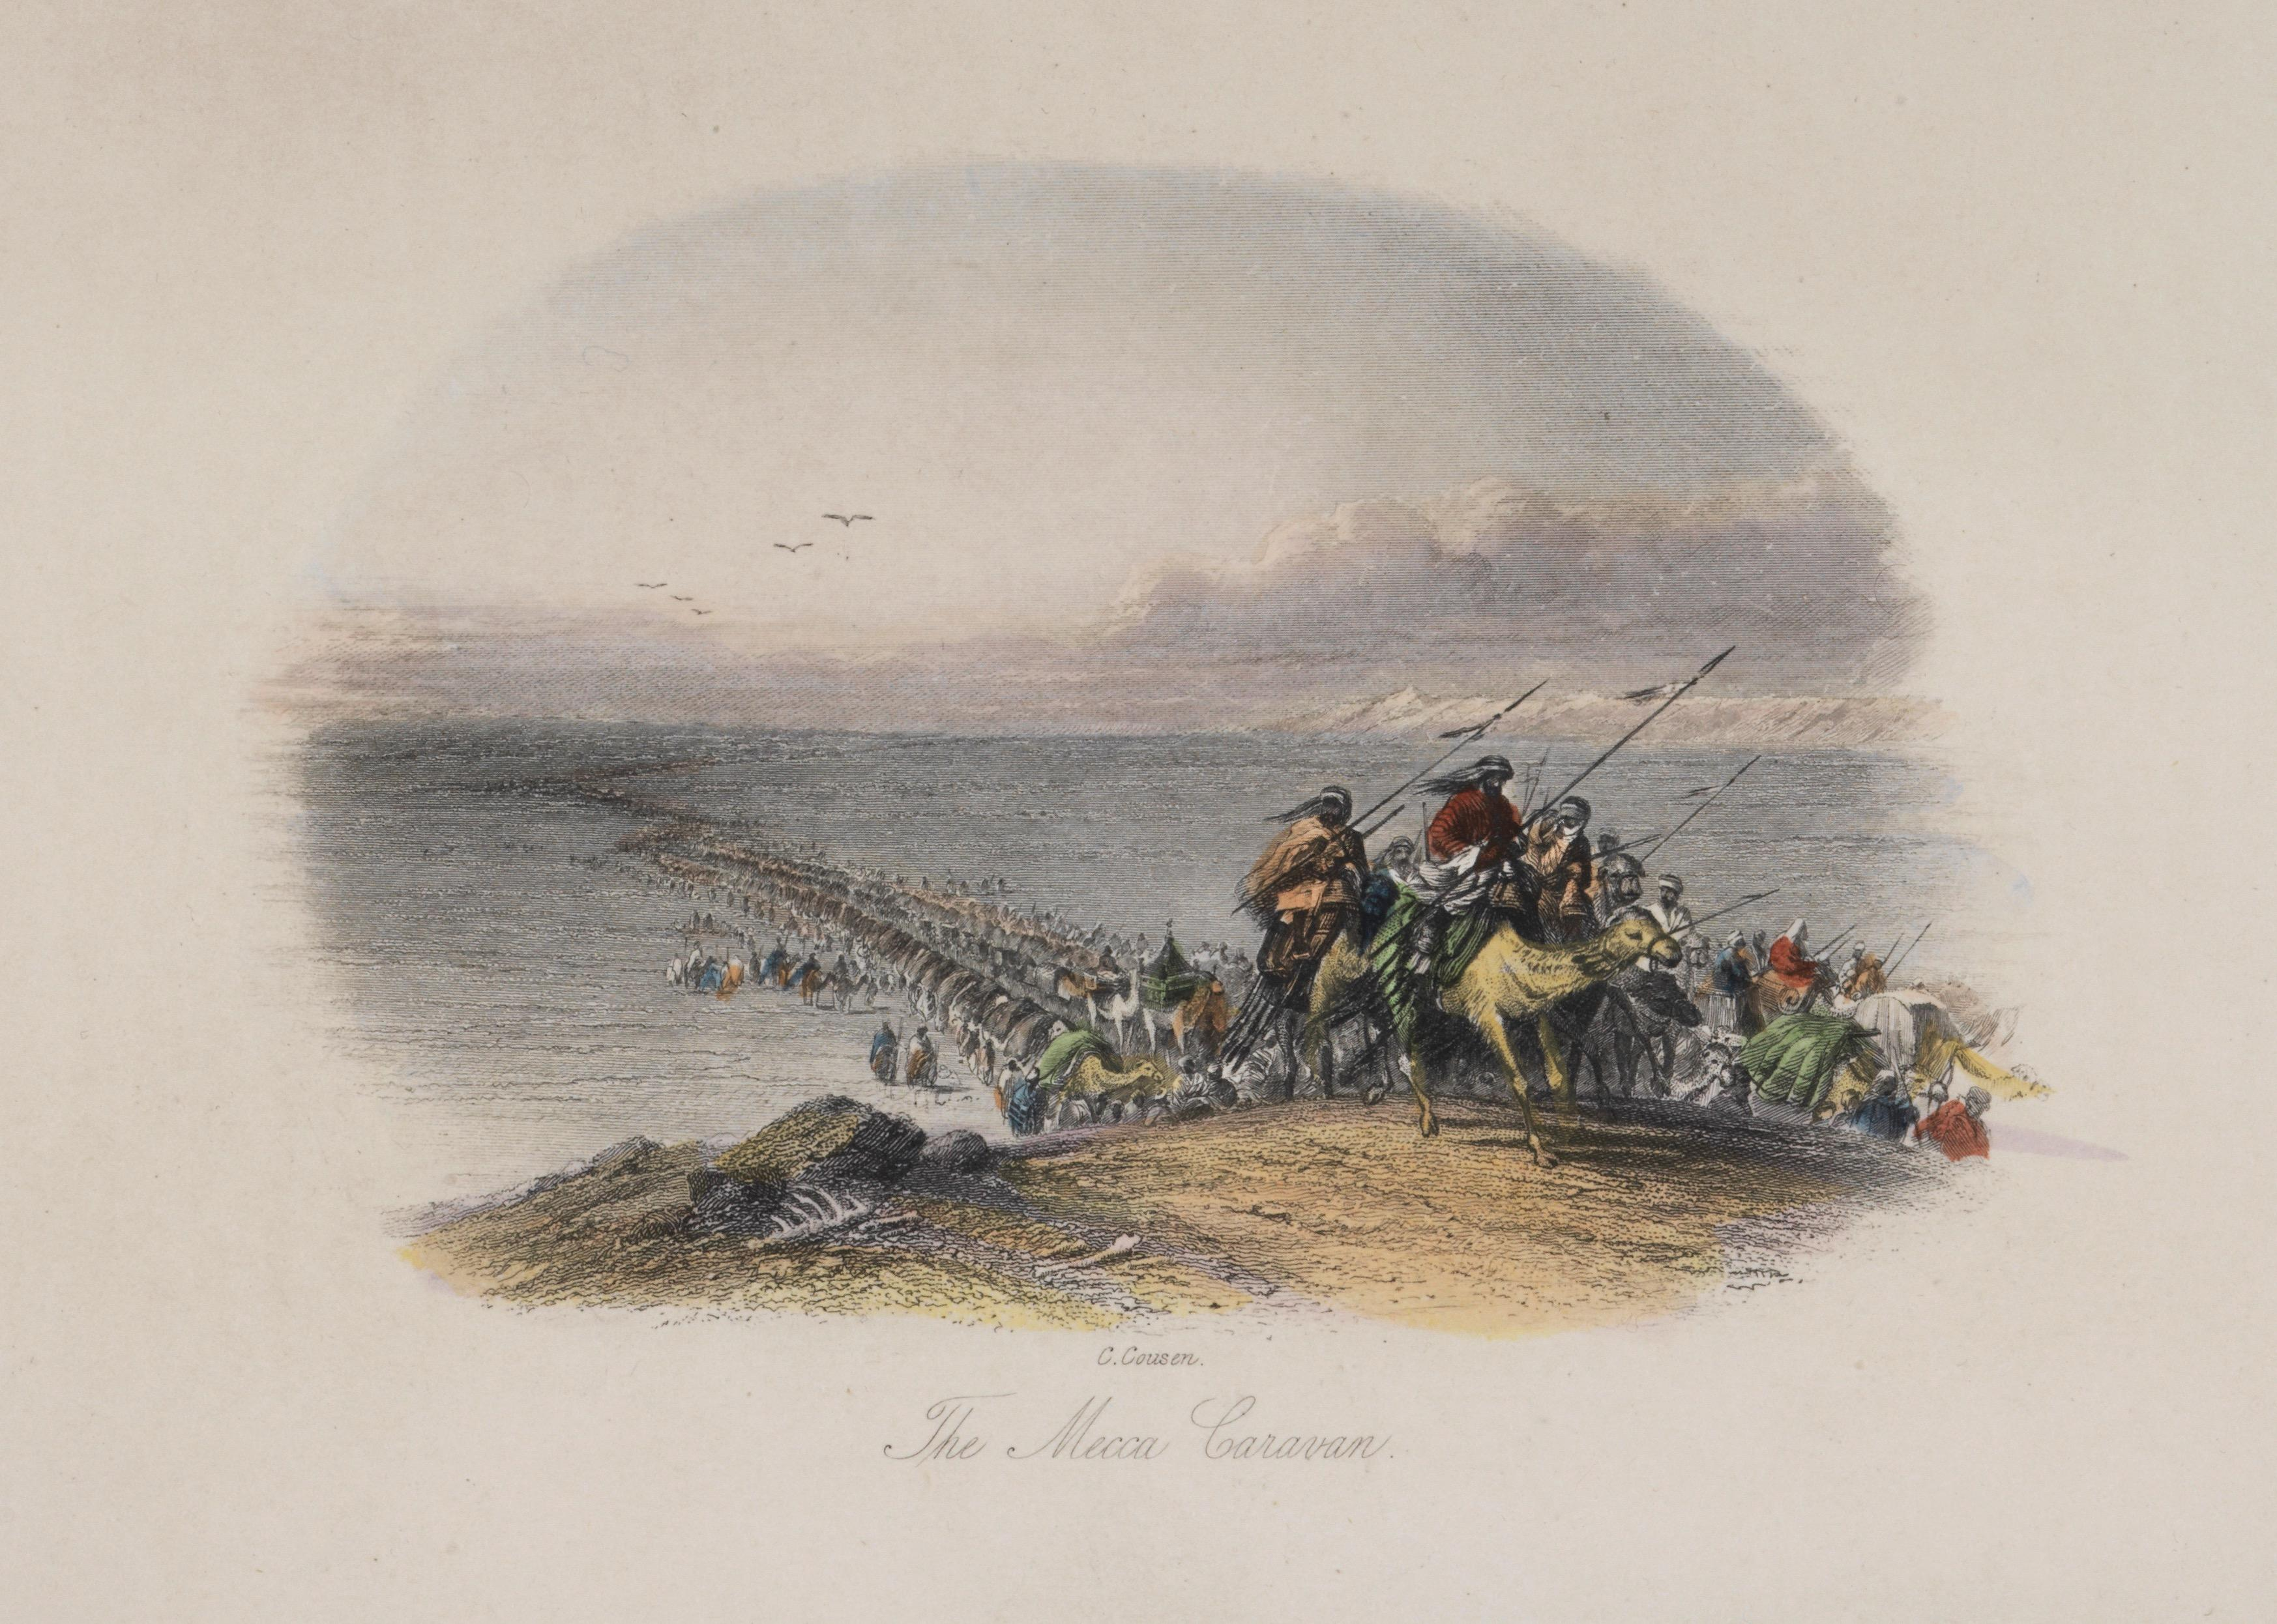 The Mecca Caravan tinted steel engraving by Charles Cousen,